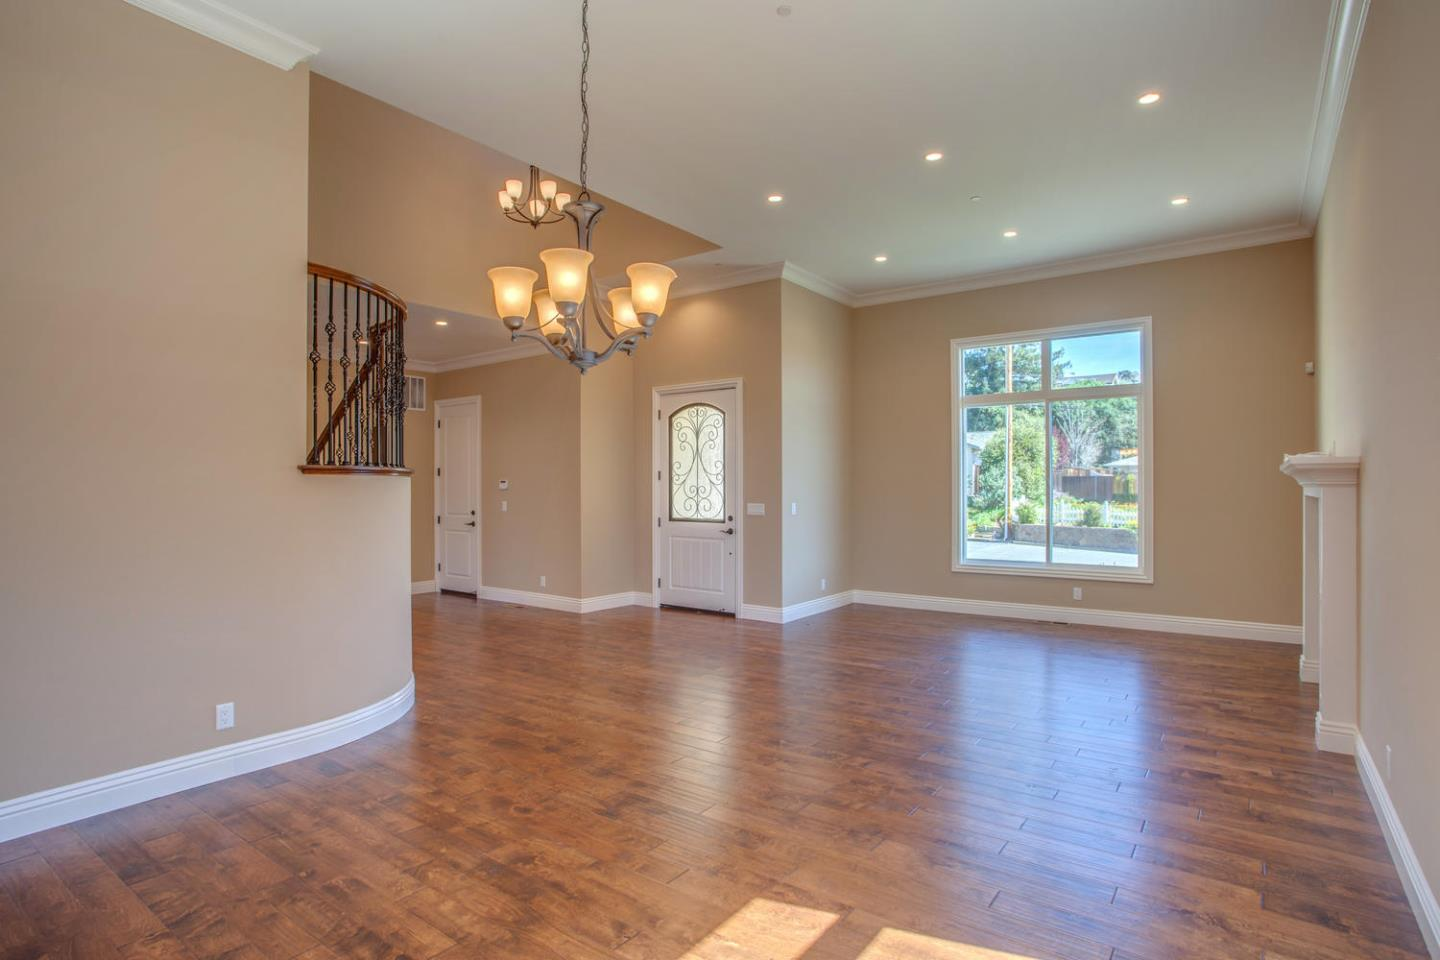 Additional photo for property listing at 793 Rosemar Court  San Jose, カリフォルニア 95127 アメリカ合衆国